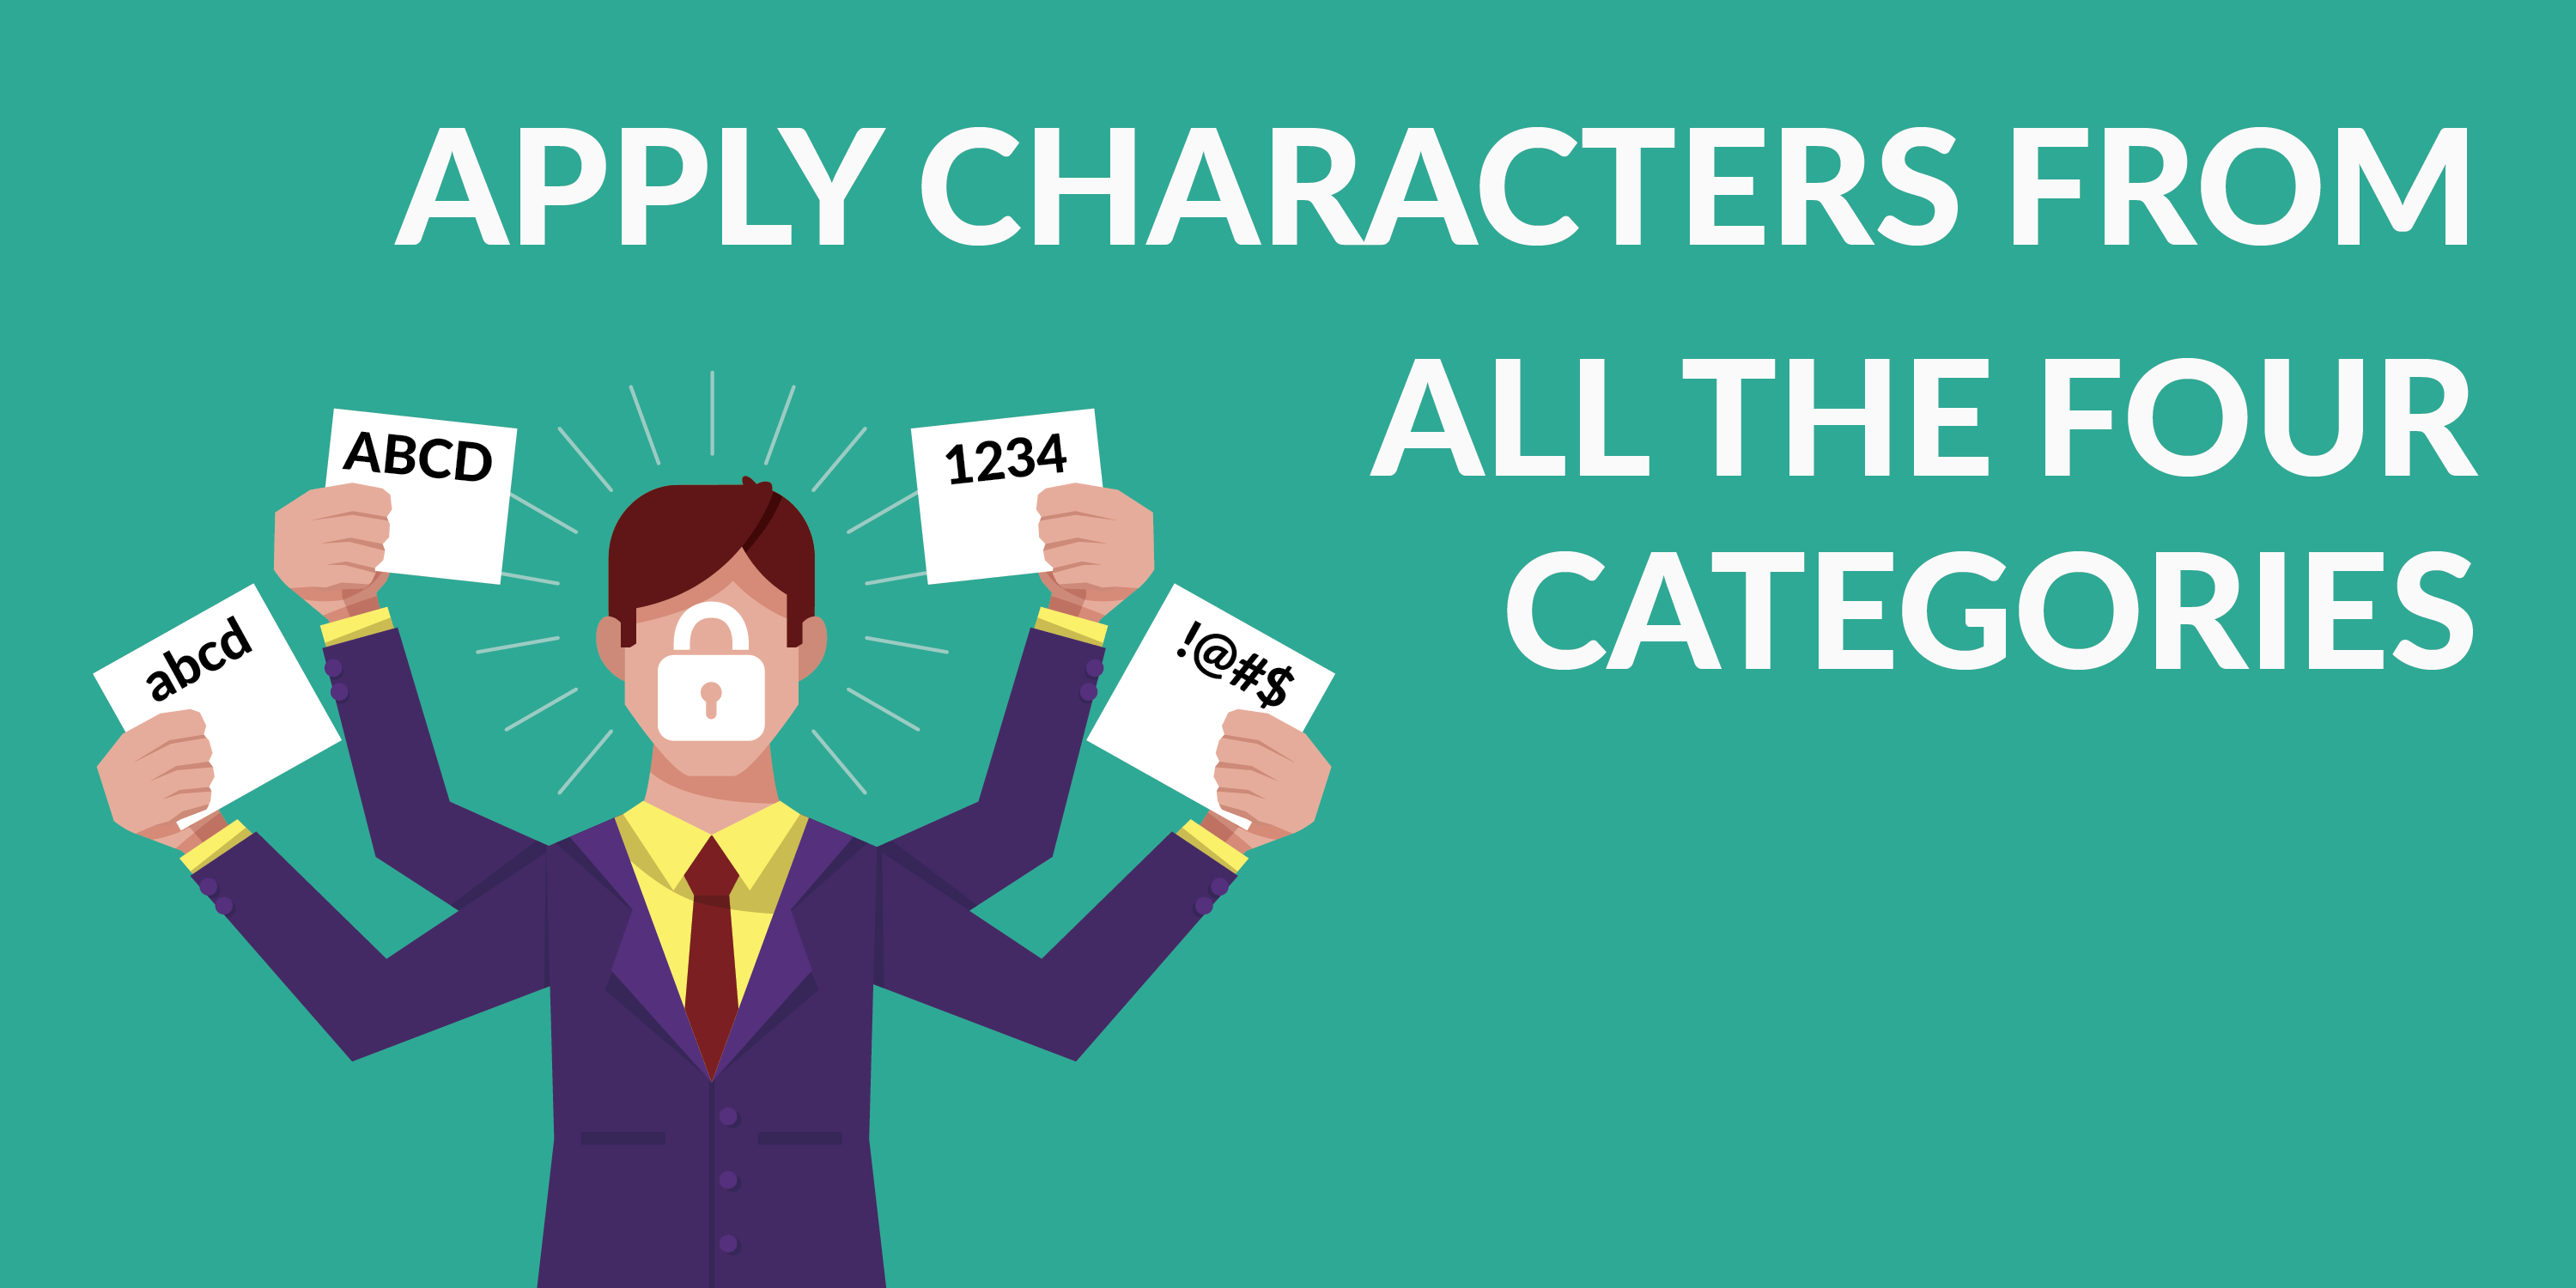 Apply Characters from all the Four Categories